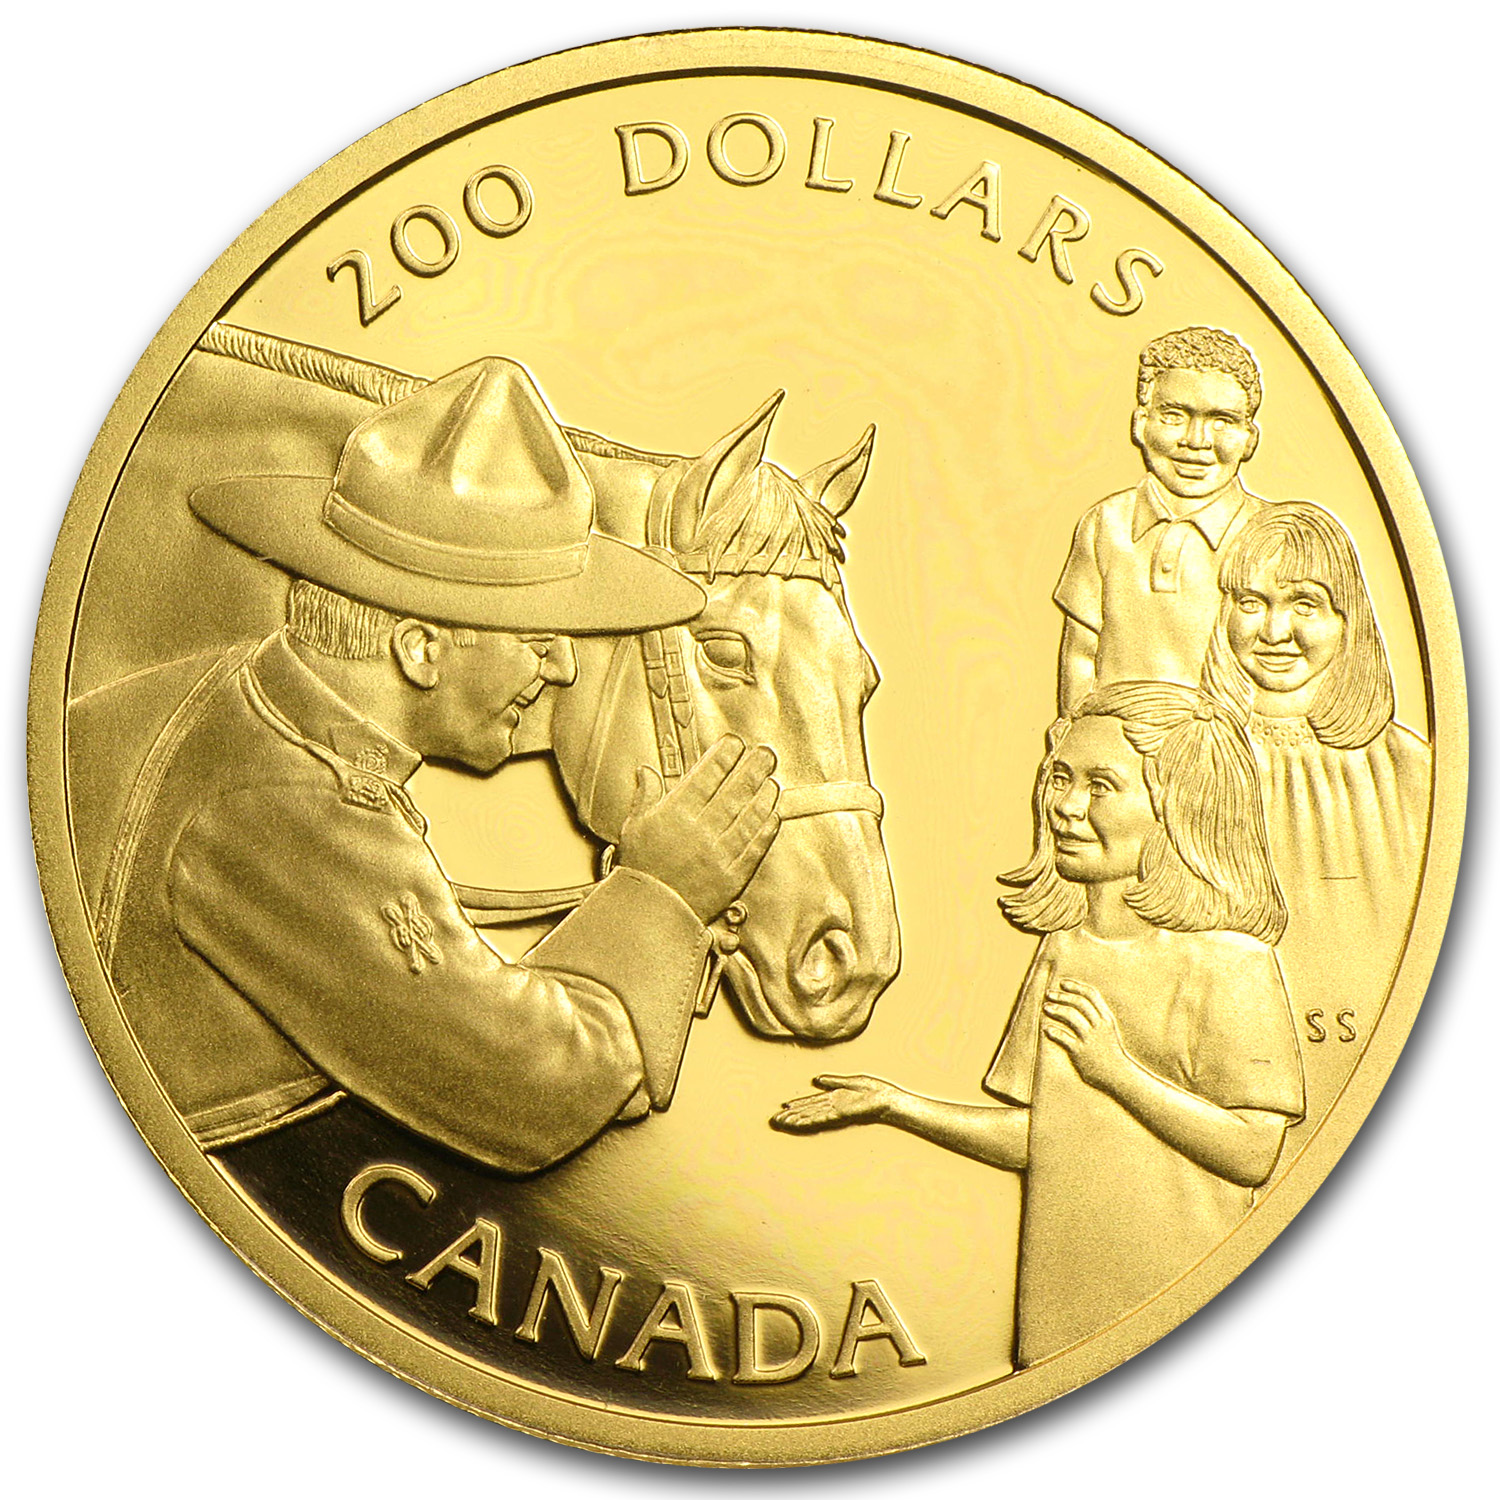 1993 Canada 1/2 oz Proof Gold $200 Mounted Police